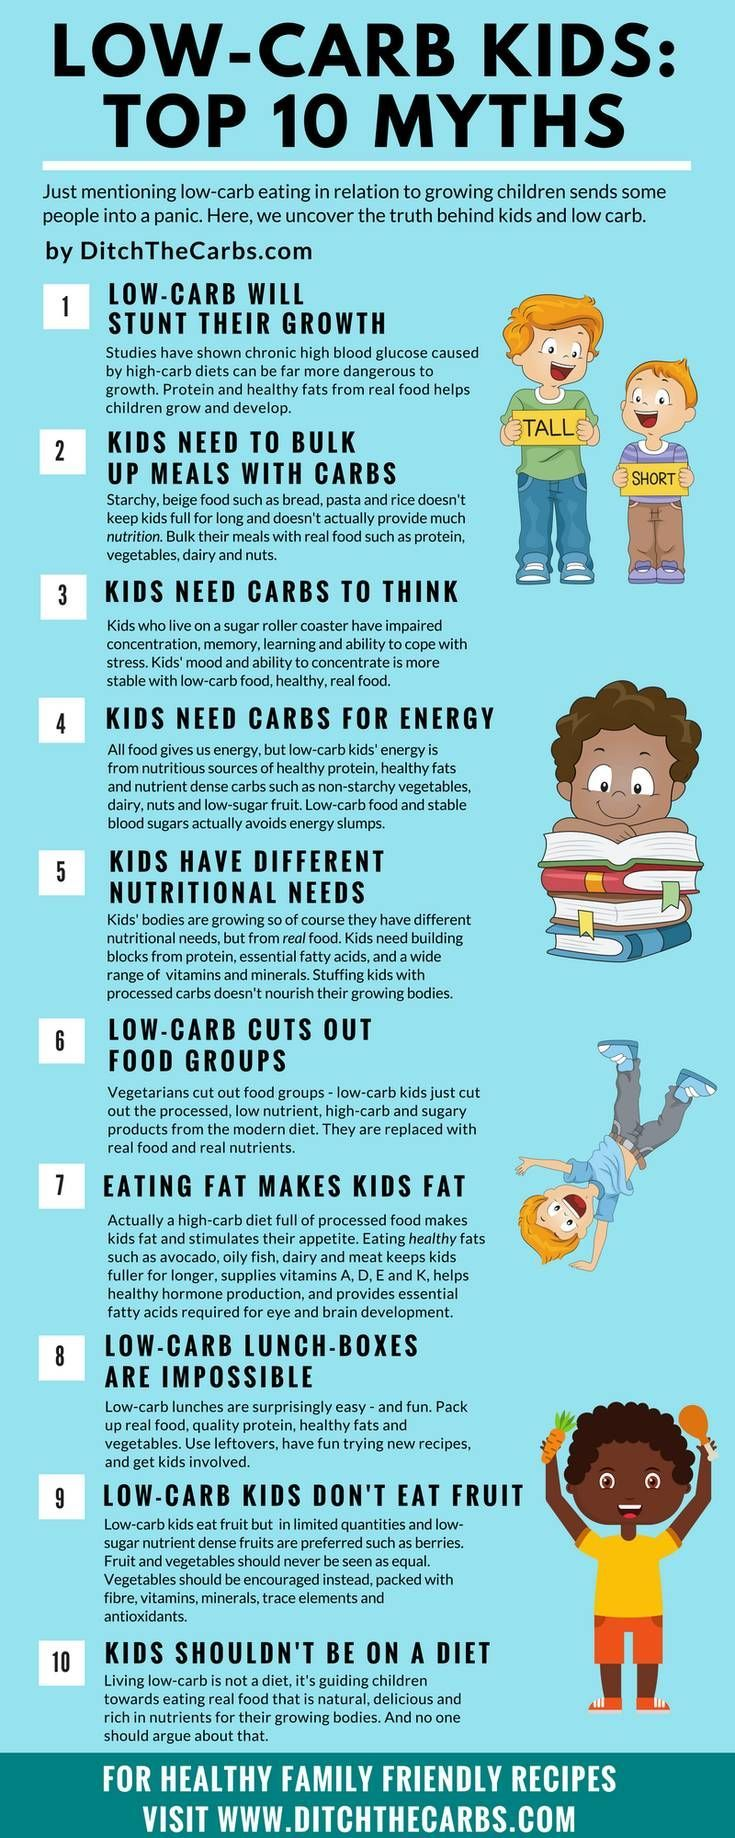 Top 10 Myths About Lowcarb Kids  Is It Dangerous Or Healthy?